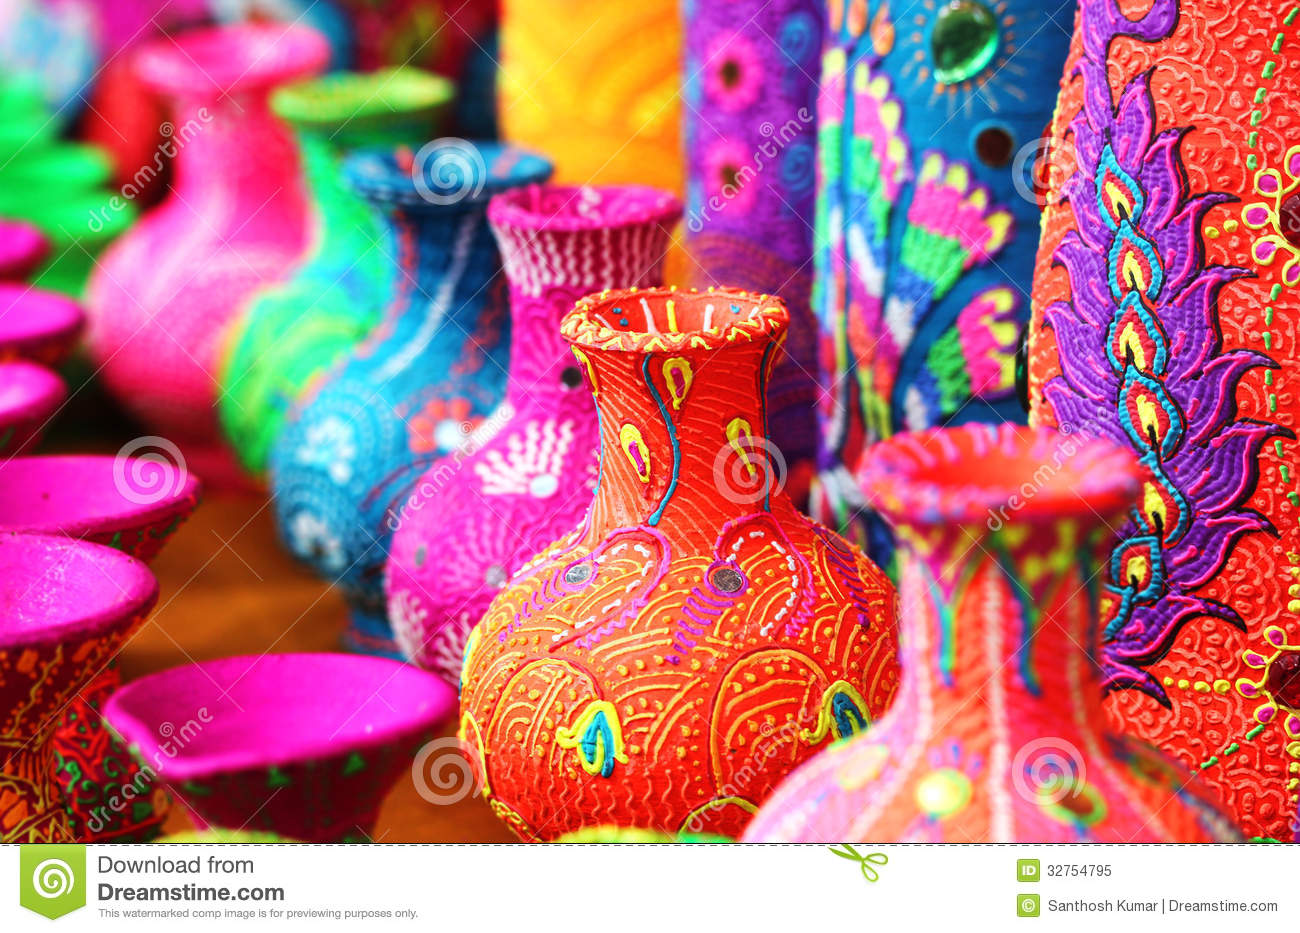 Colorful Artistic Pots Or Flower Vases In Vibrant Colors Stock Image ...